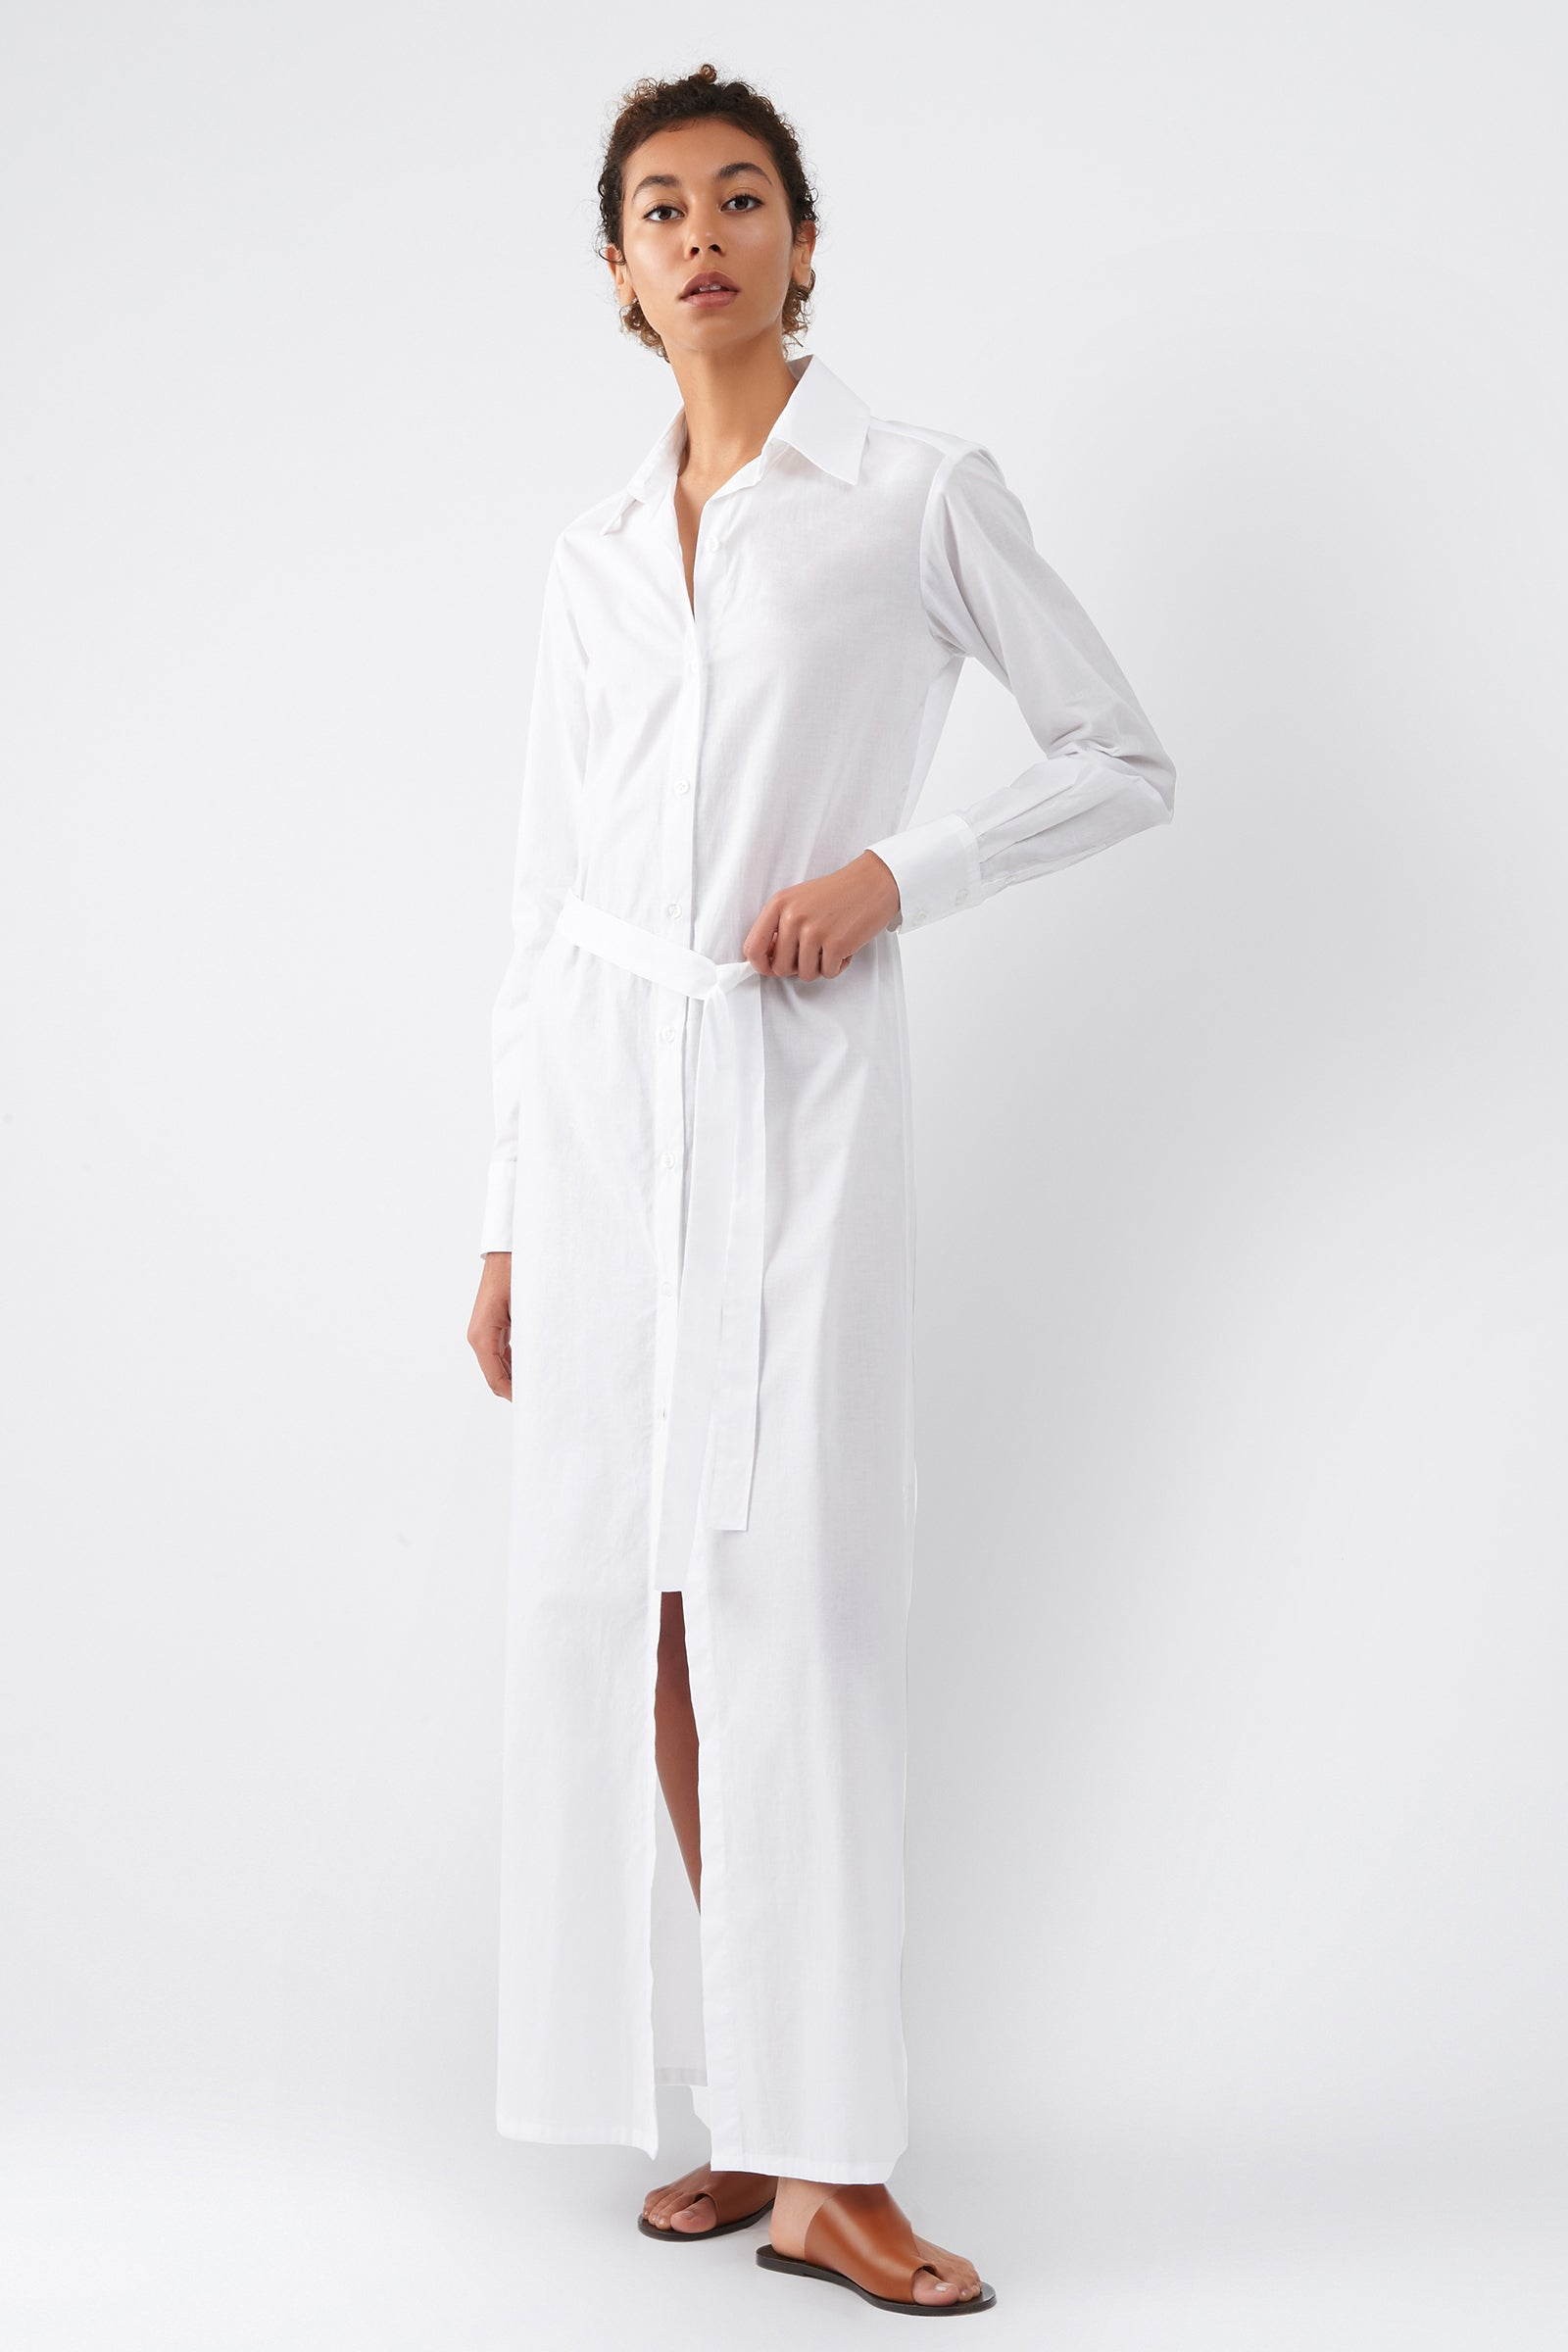 Kal Rieman Voile Maxi Shirt Dress in White on Model Full Front View